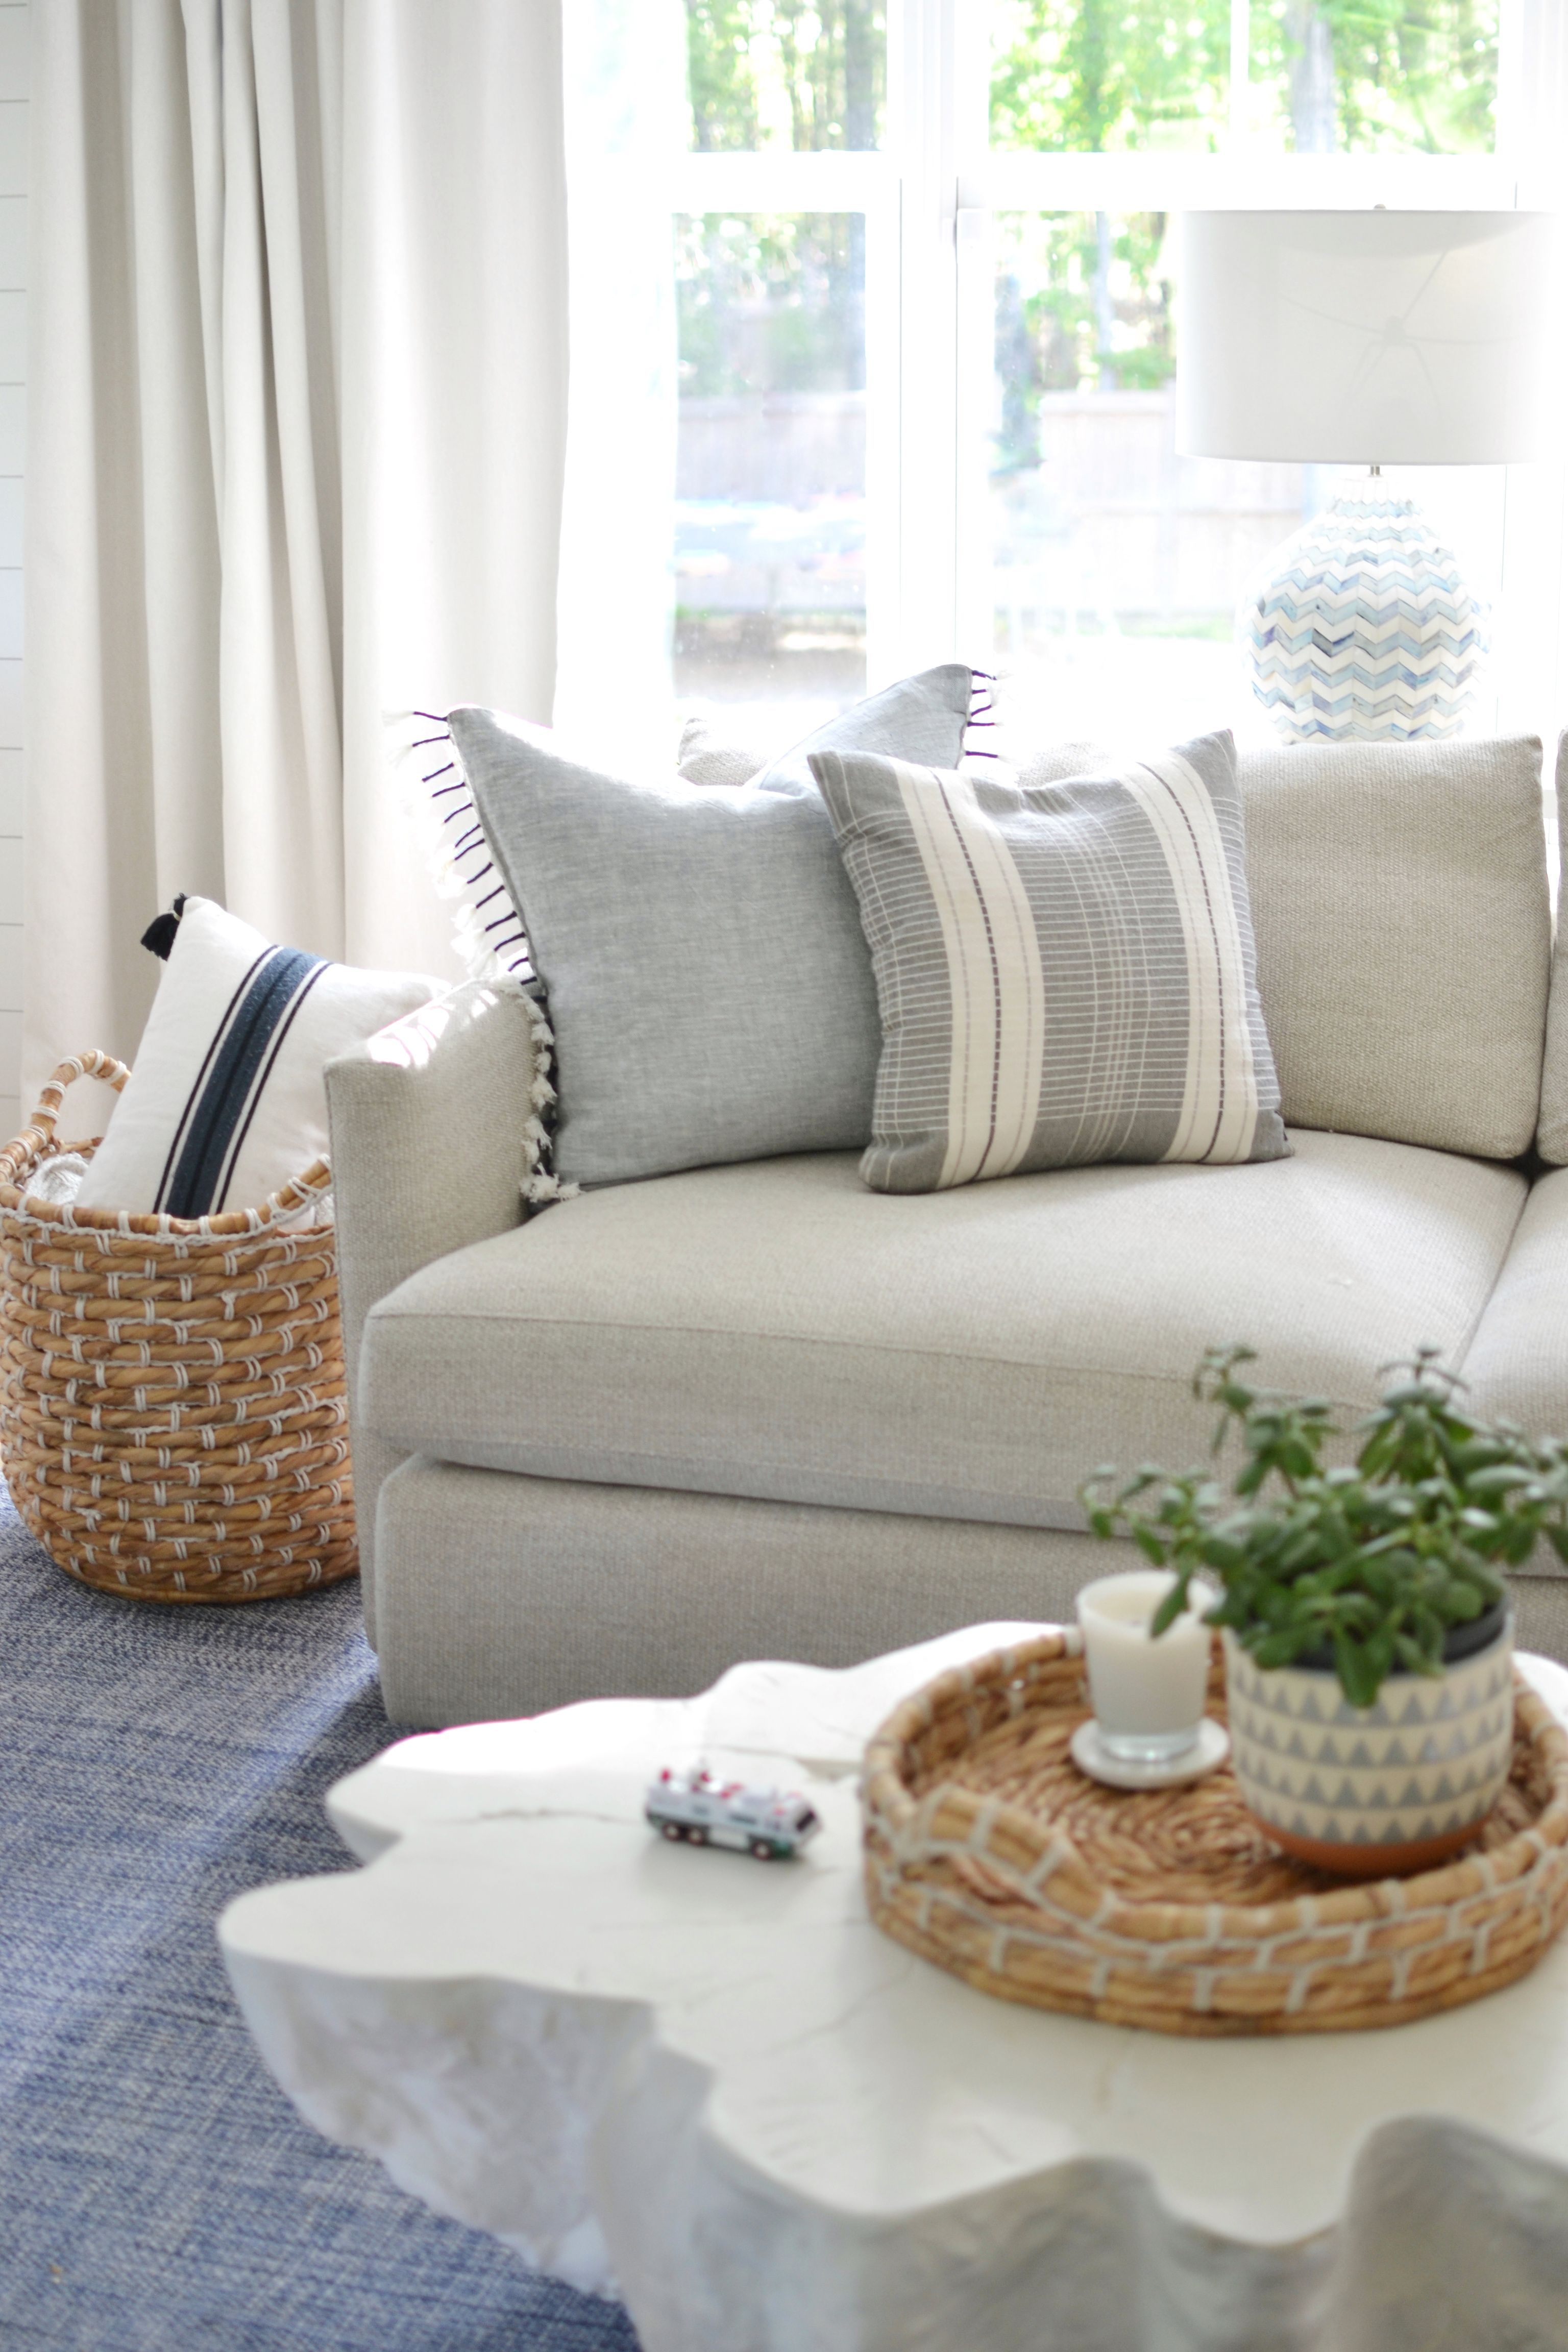 Picking The Right Throw Pillows For Your Grey Couch In 2020 Grey Couch Living Room Throw Pillows Living Room Grey Couches #pillow #covers #living #room